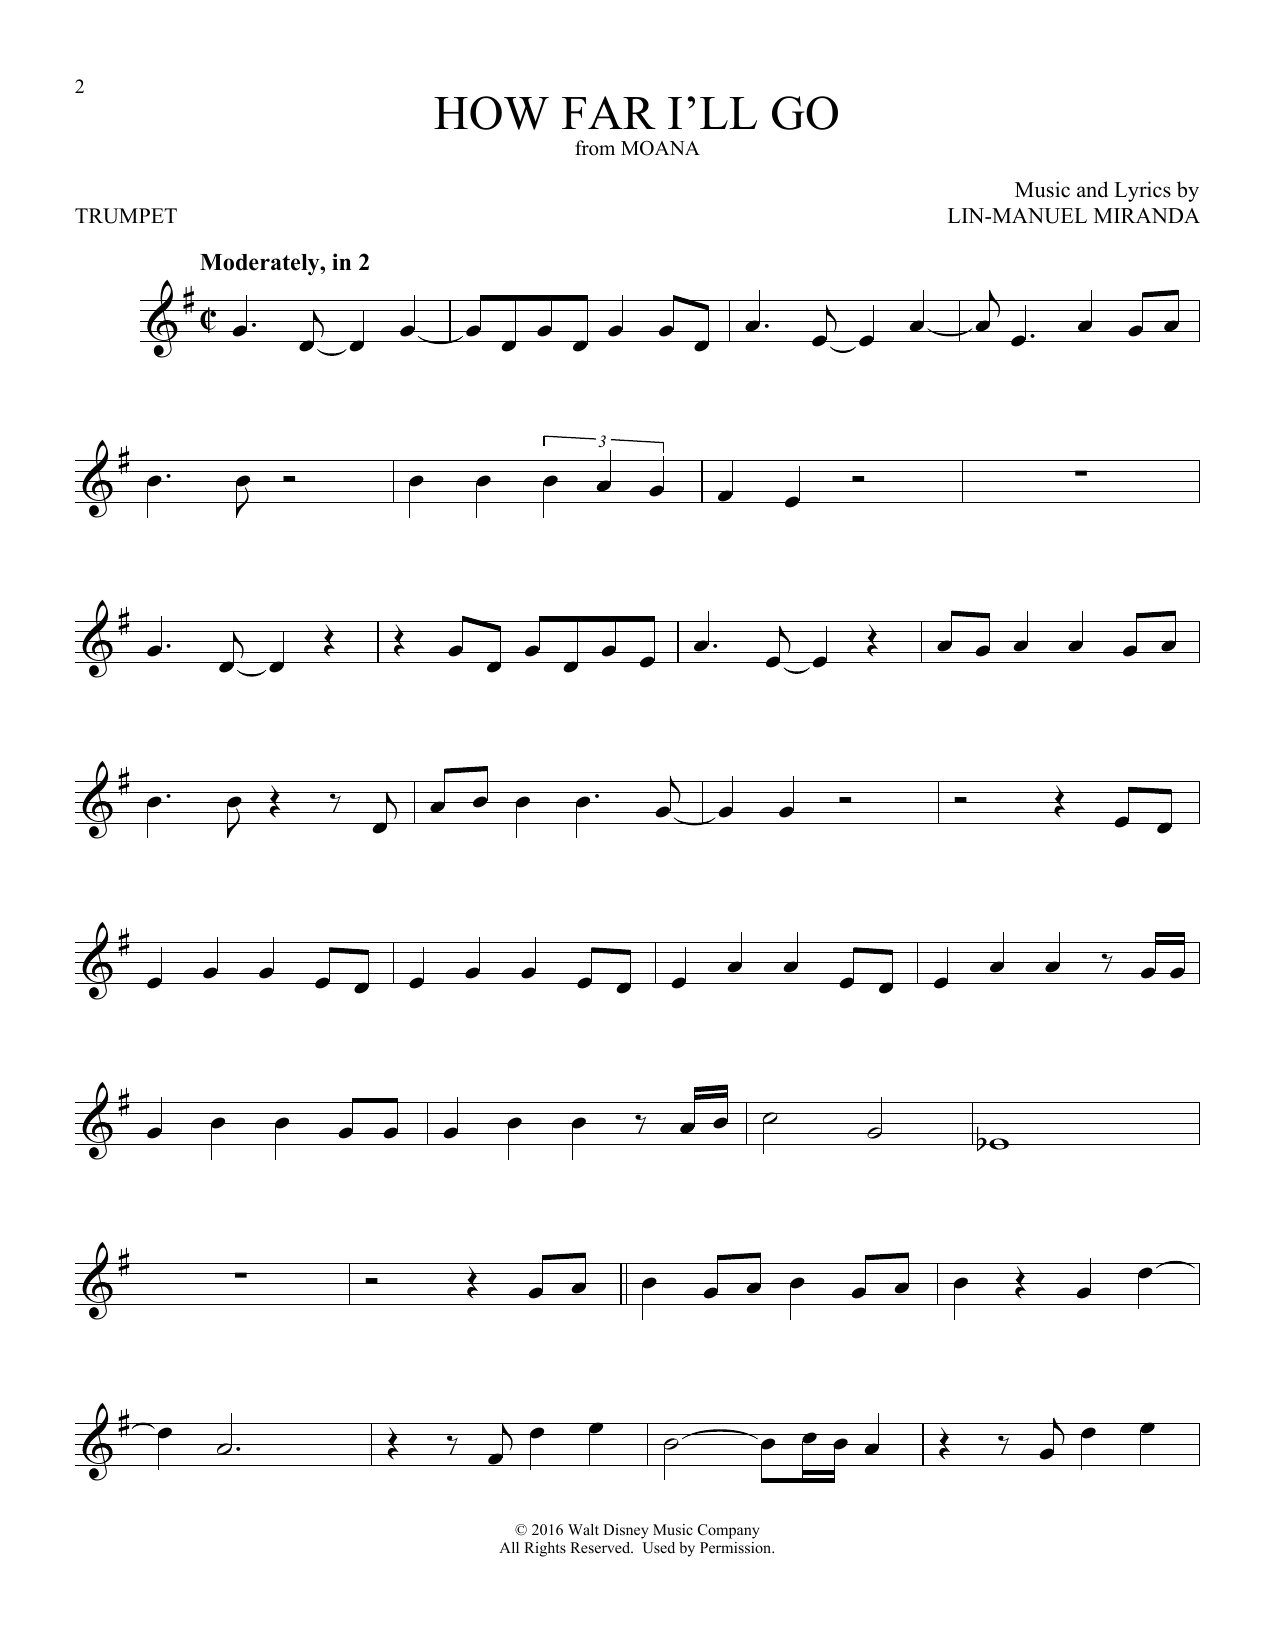 How Far I'll Go (Trumpet Solo) - Print Sheet Music Now